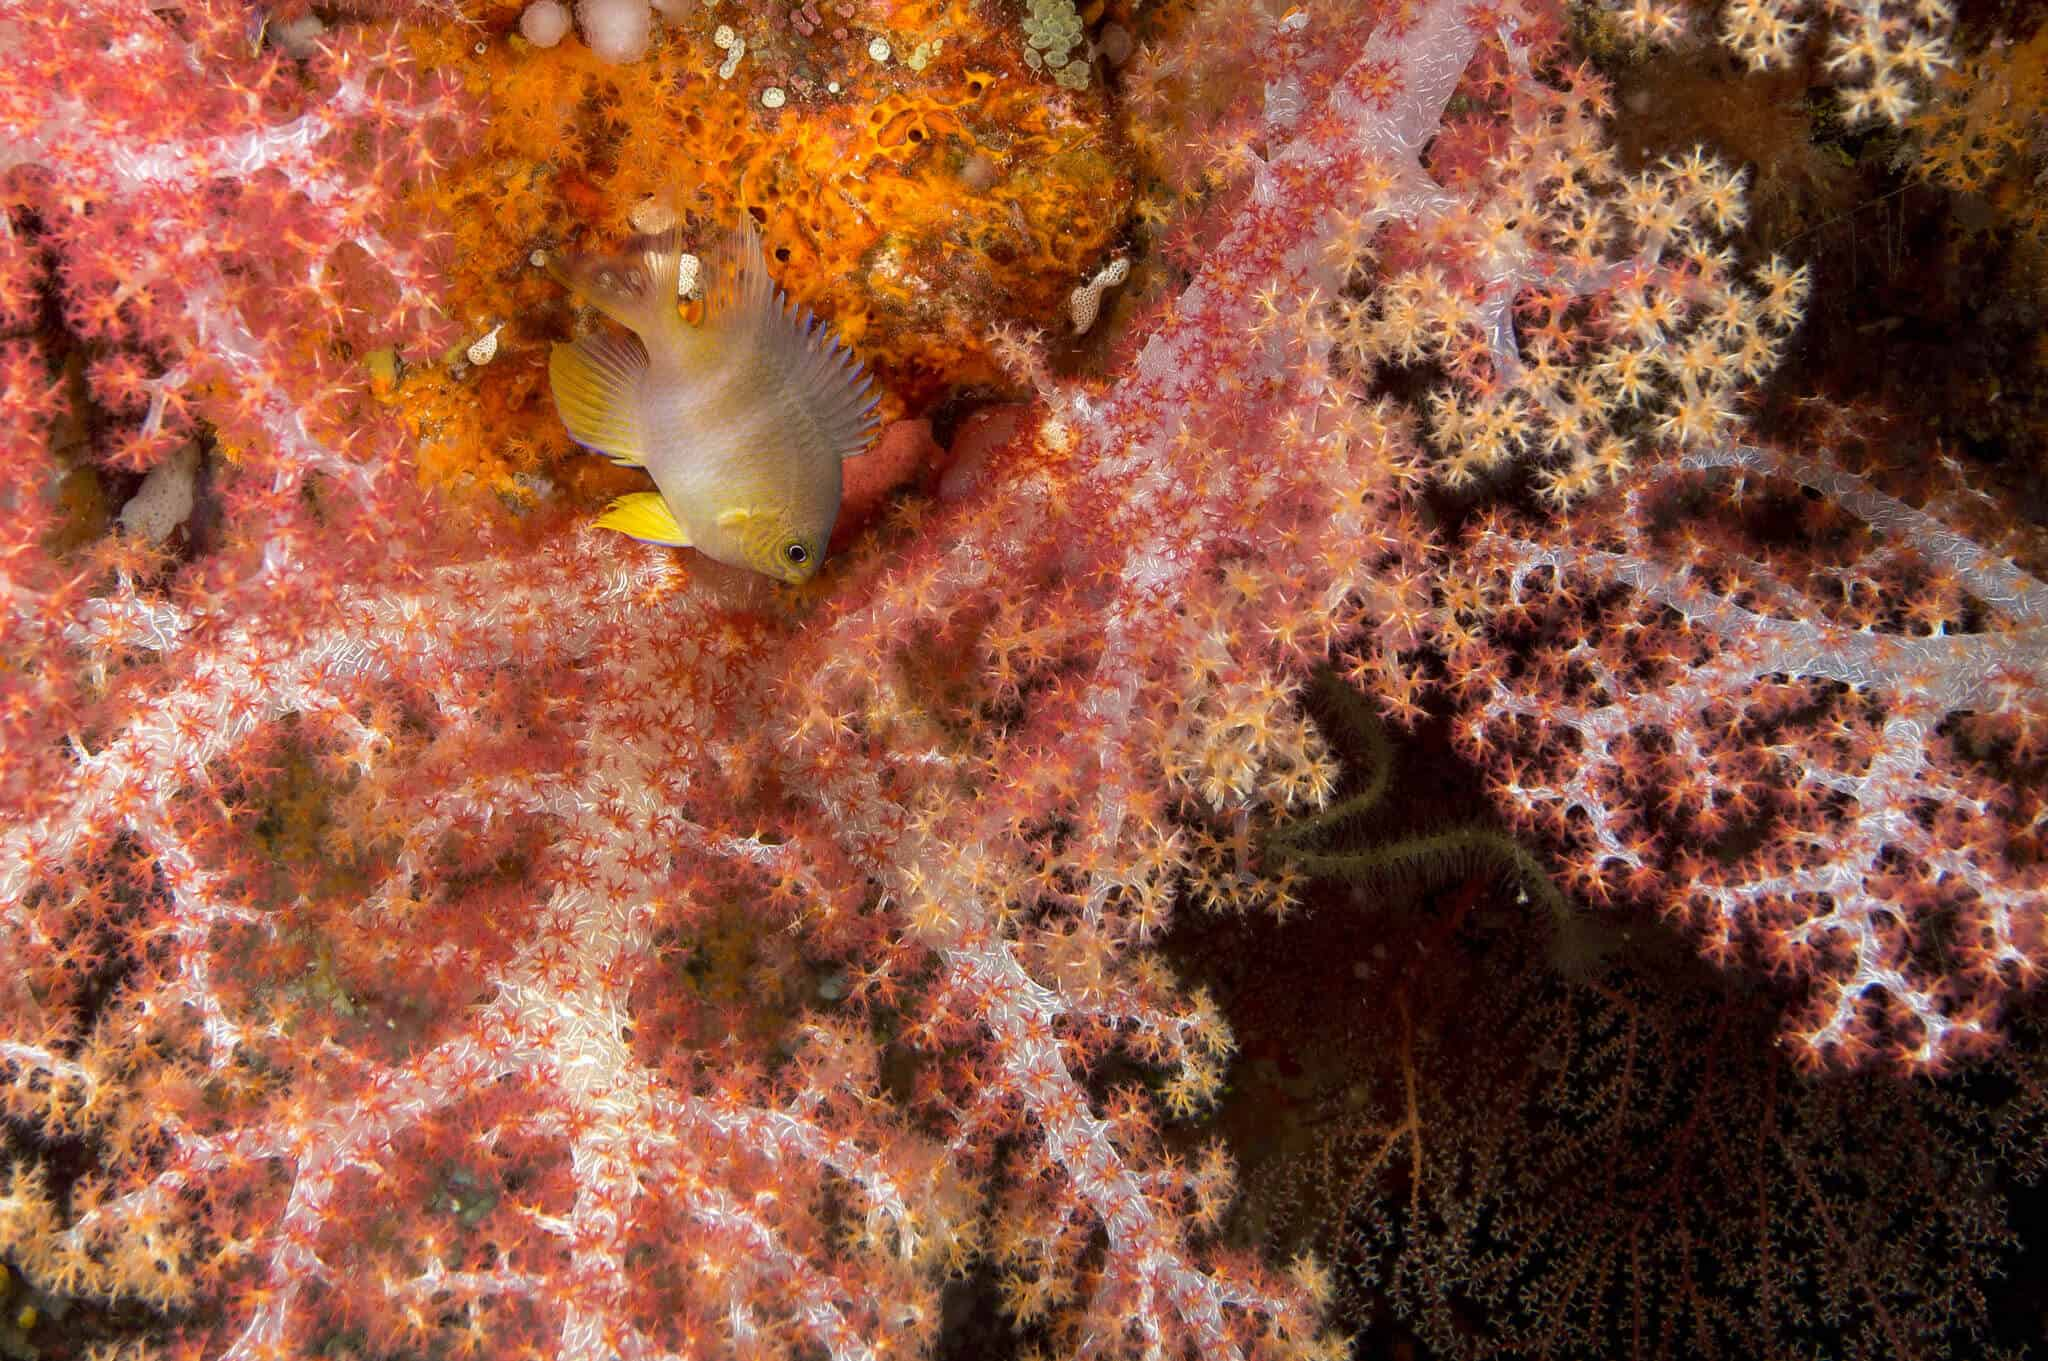 Soft coral - Photo by Ratha Grimes